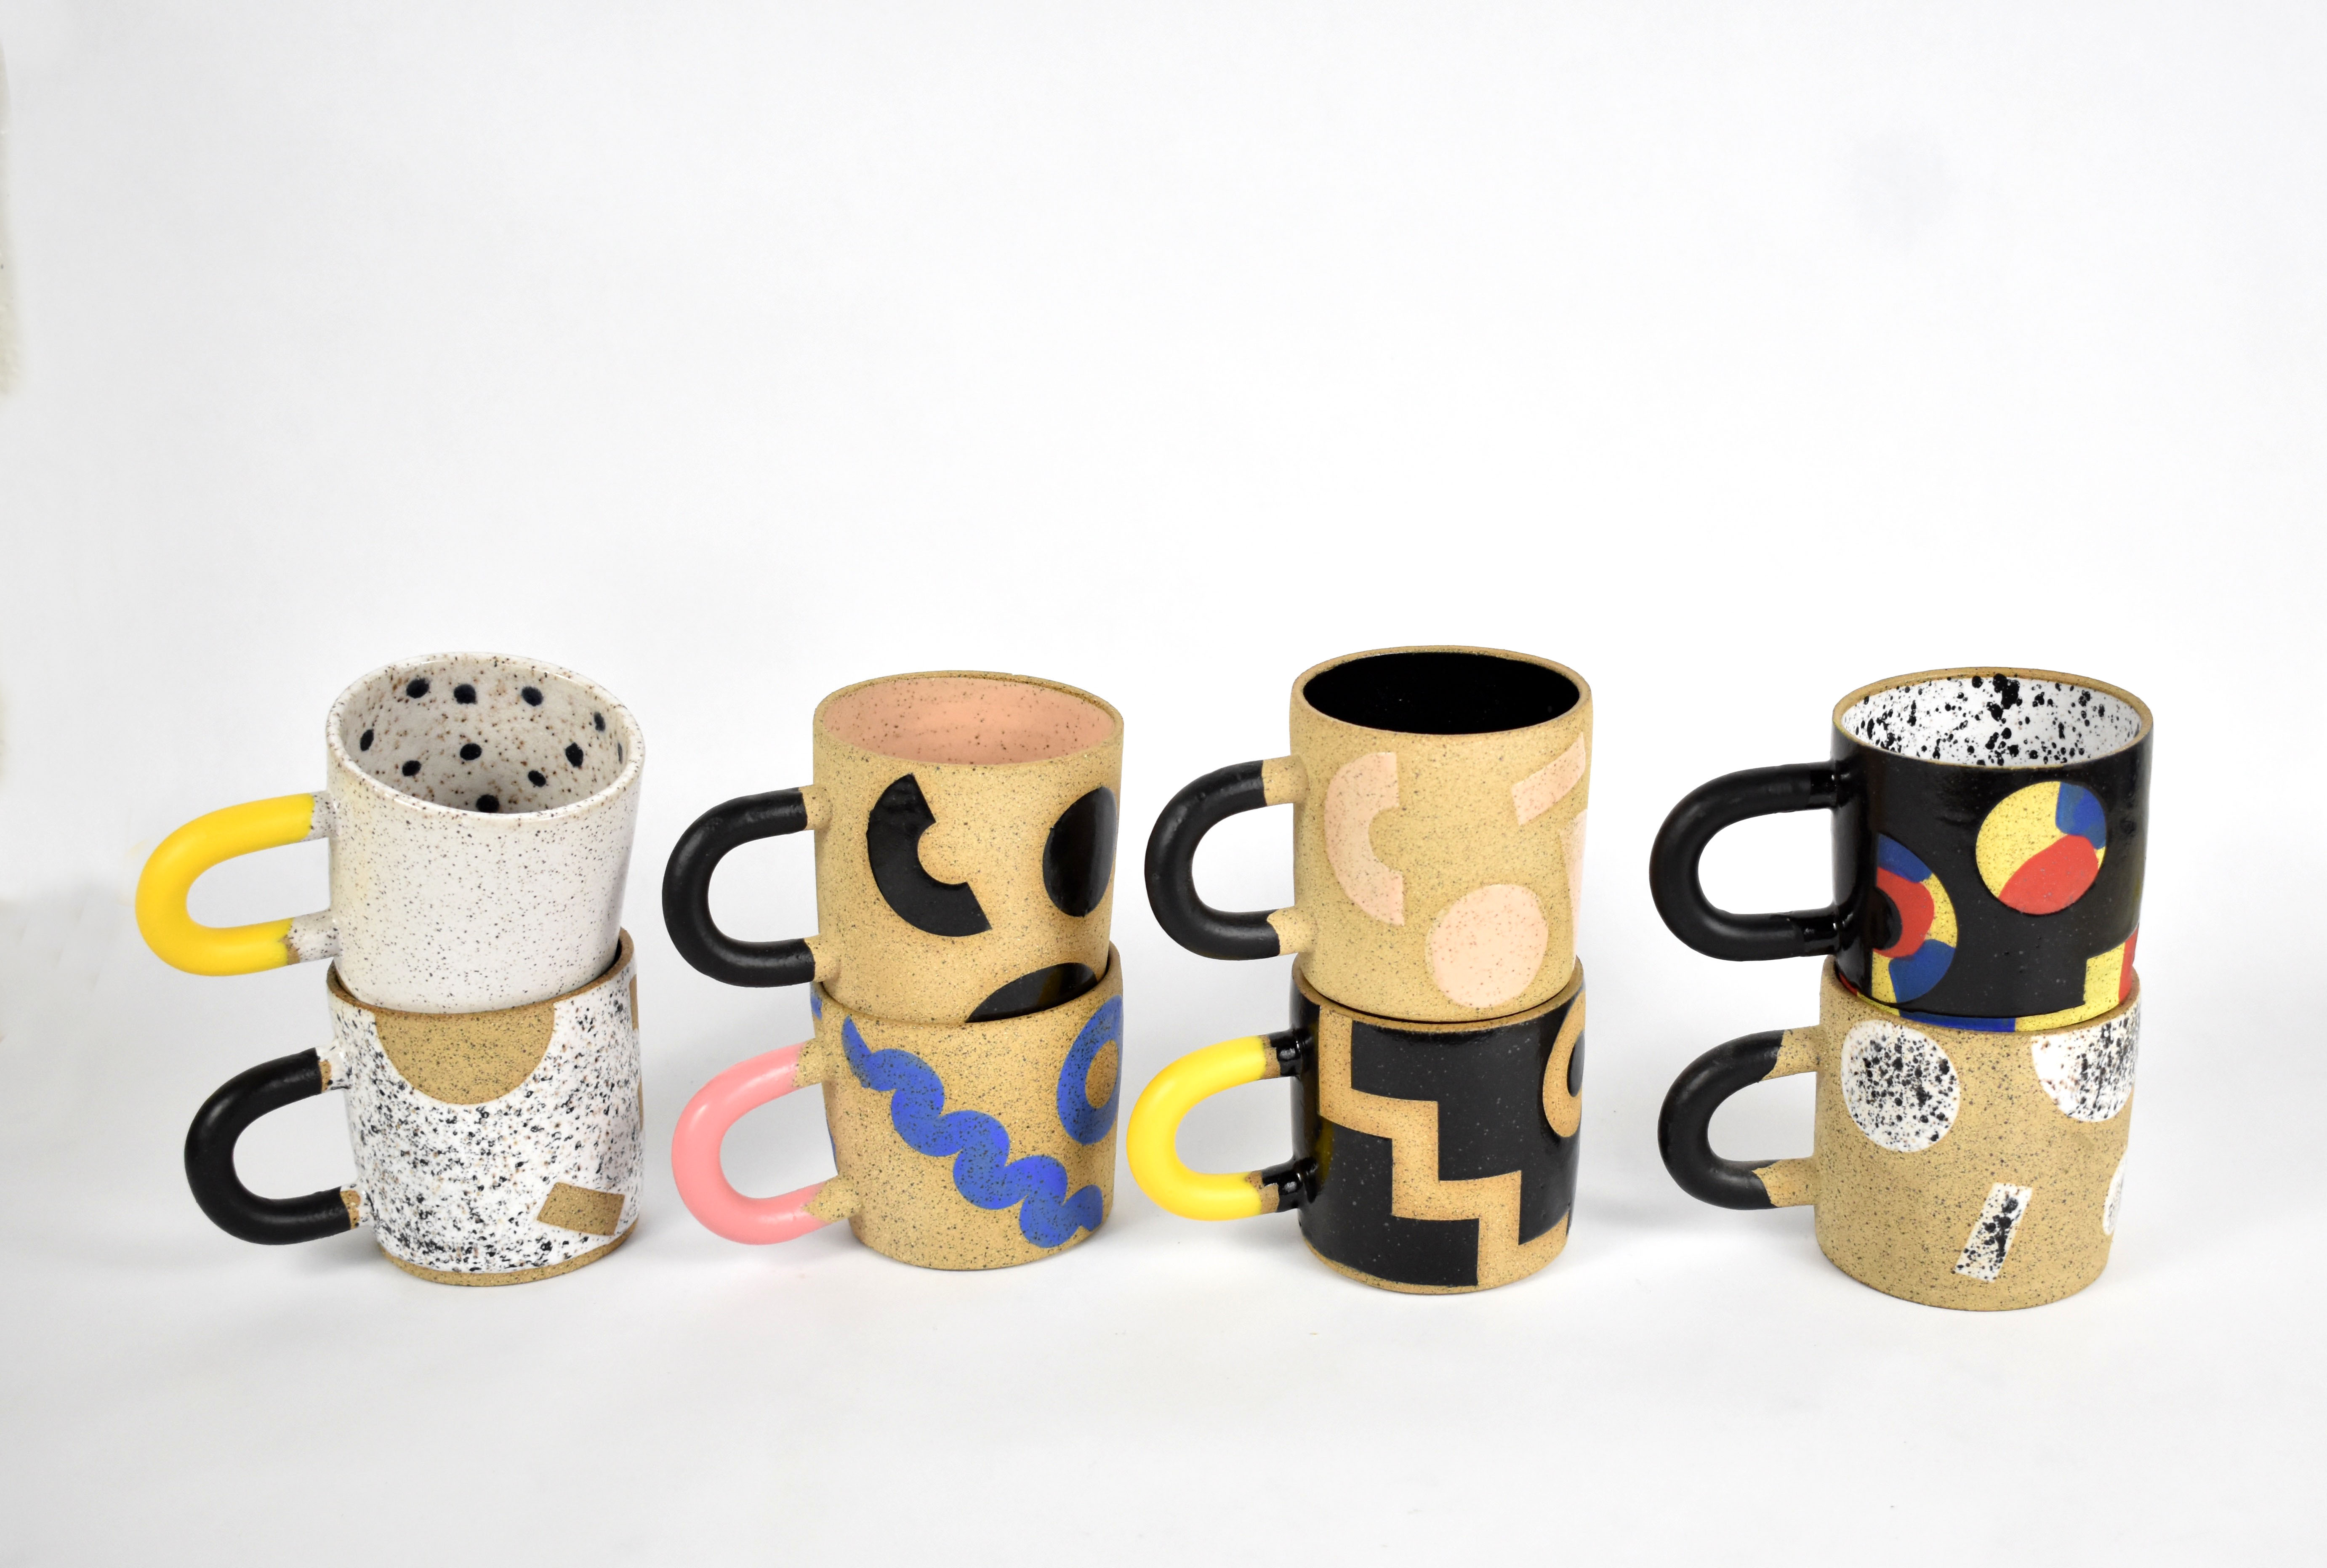 80s inspired stoneware mugs